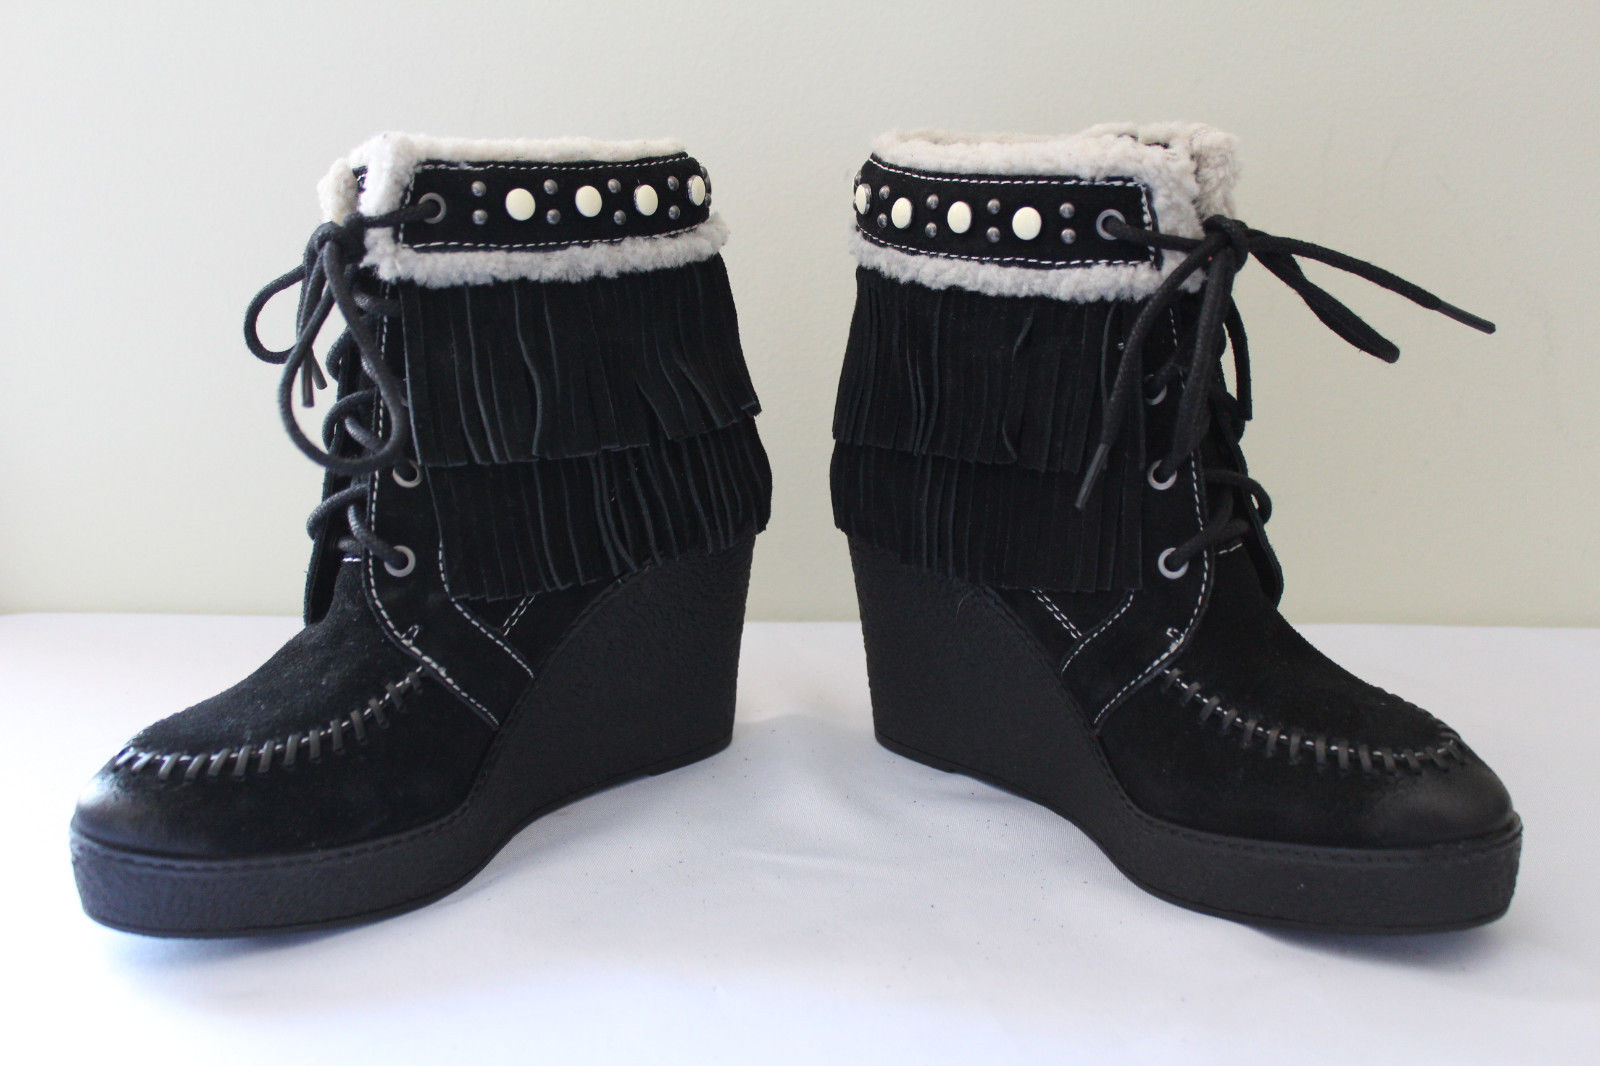 282afad7aa63 Sam Edelman Black Suede Leather Fringe and 27 similar items. S l1600